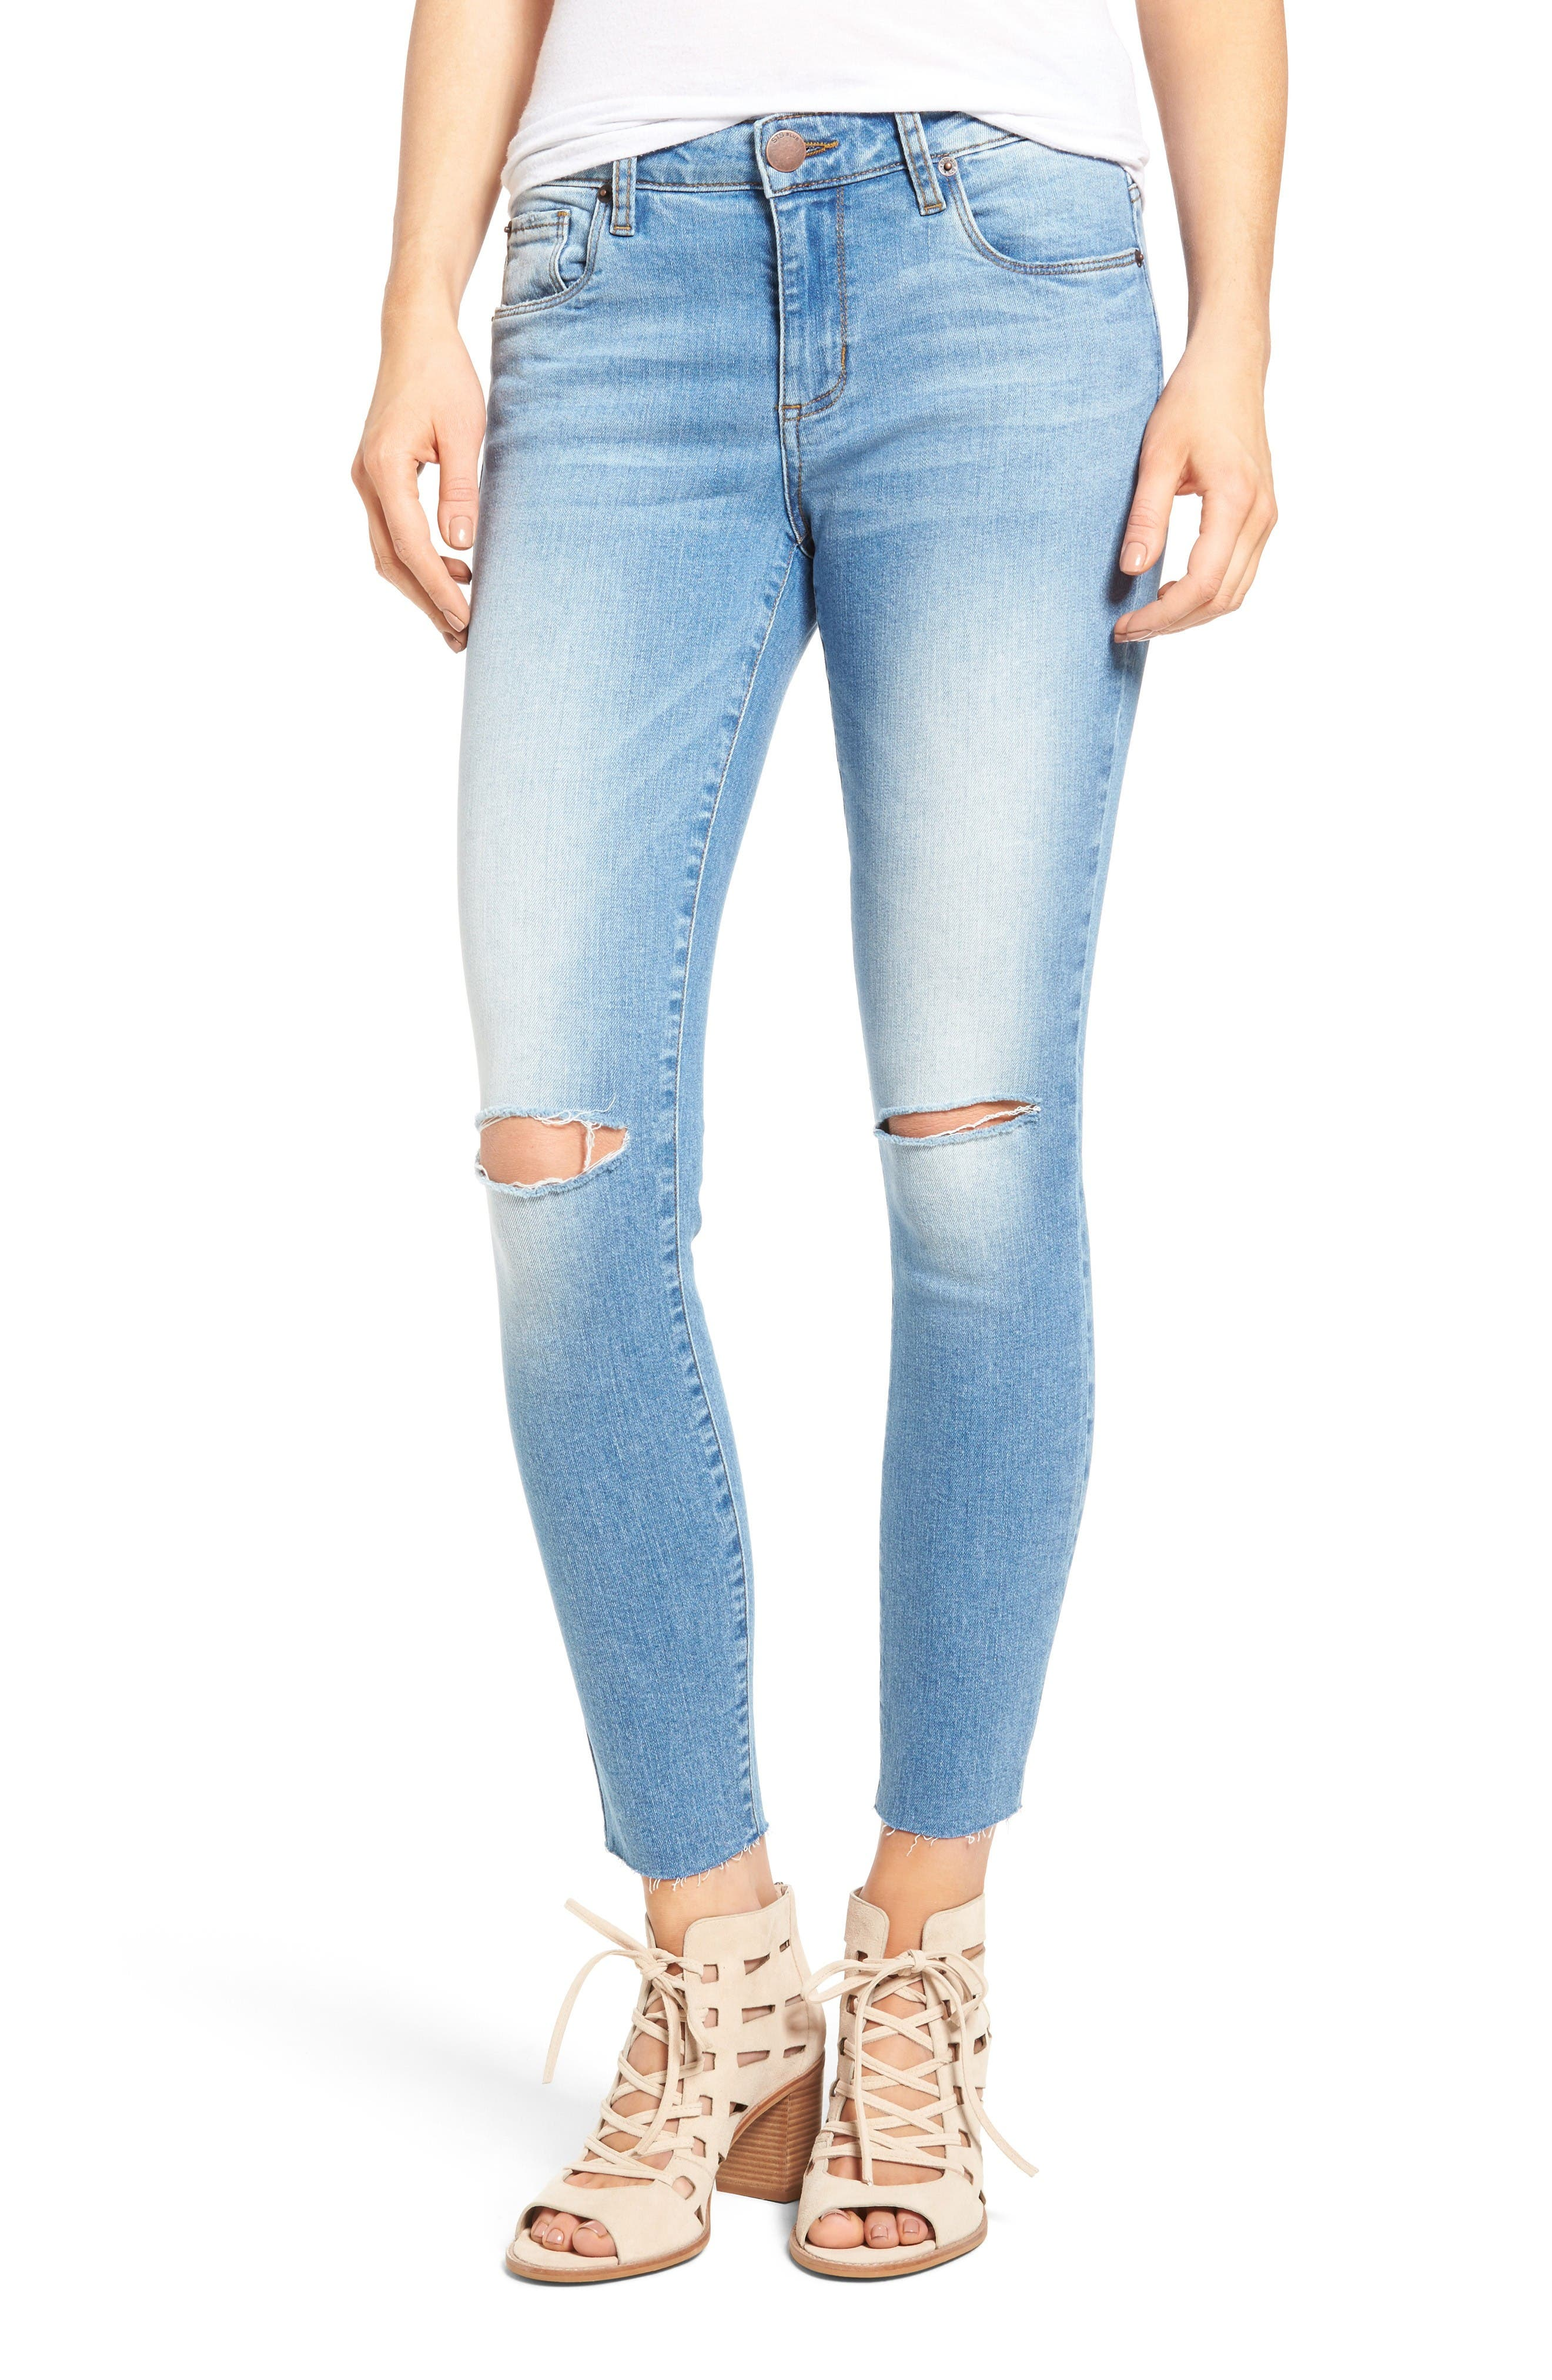 Alternate Image 1 Selected - STS Blue Emma Ripped Crop Skinny Jeans (Mount Tallac)